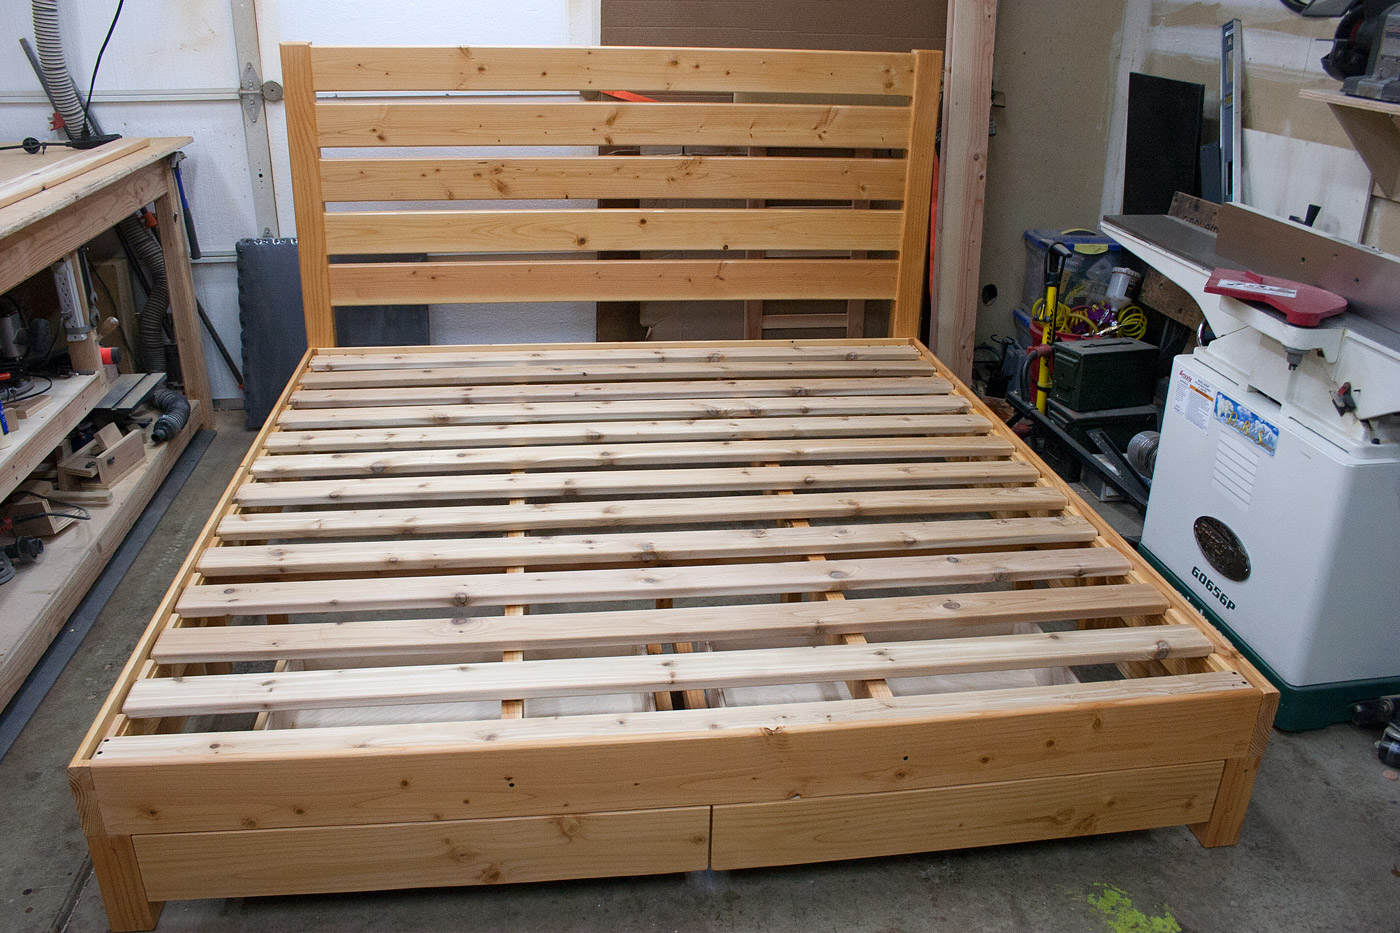 King with headboard, 2 drawers on end